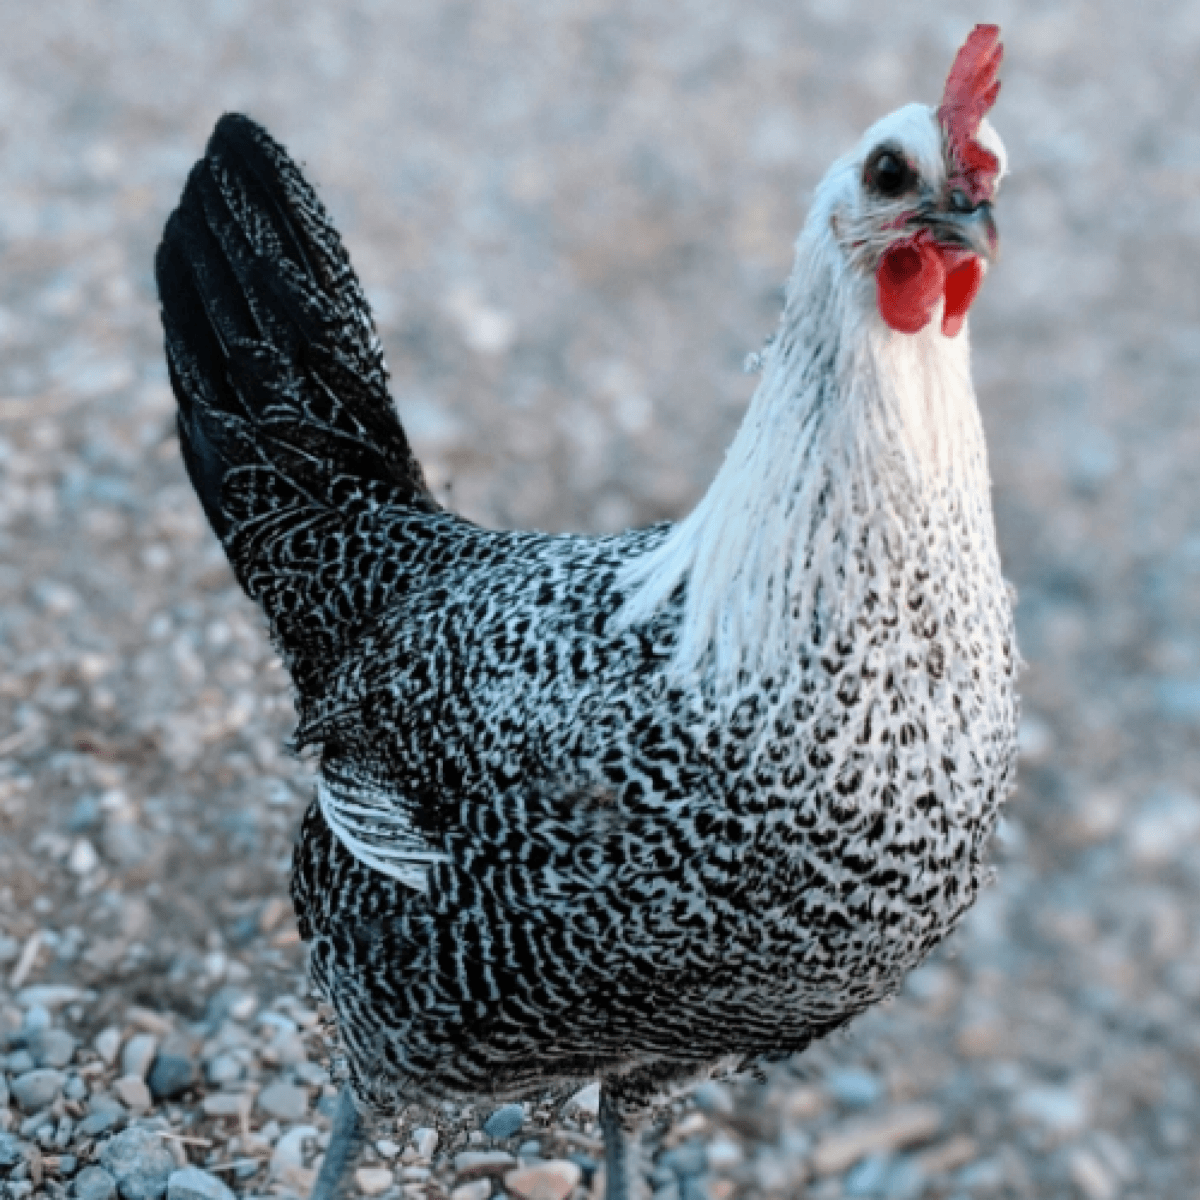 Best Free Ranging Breeds Blog